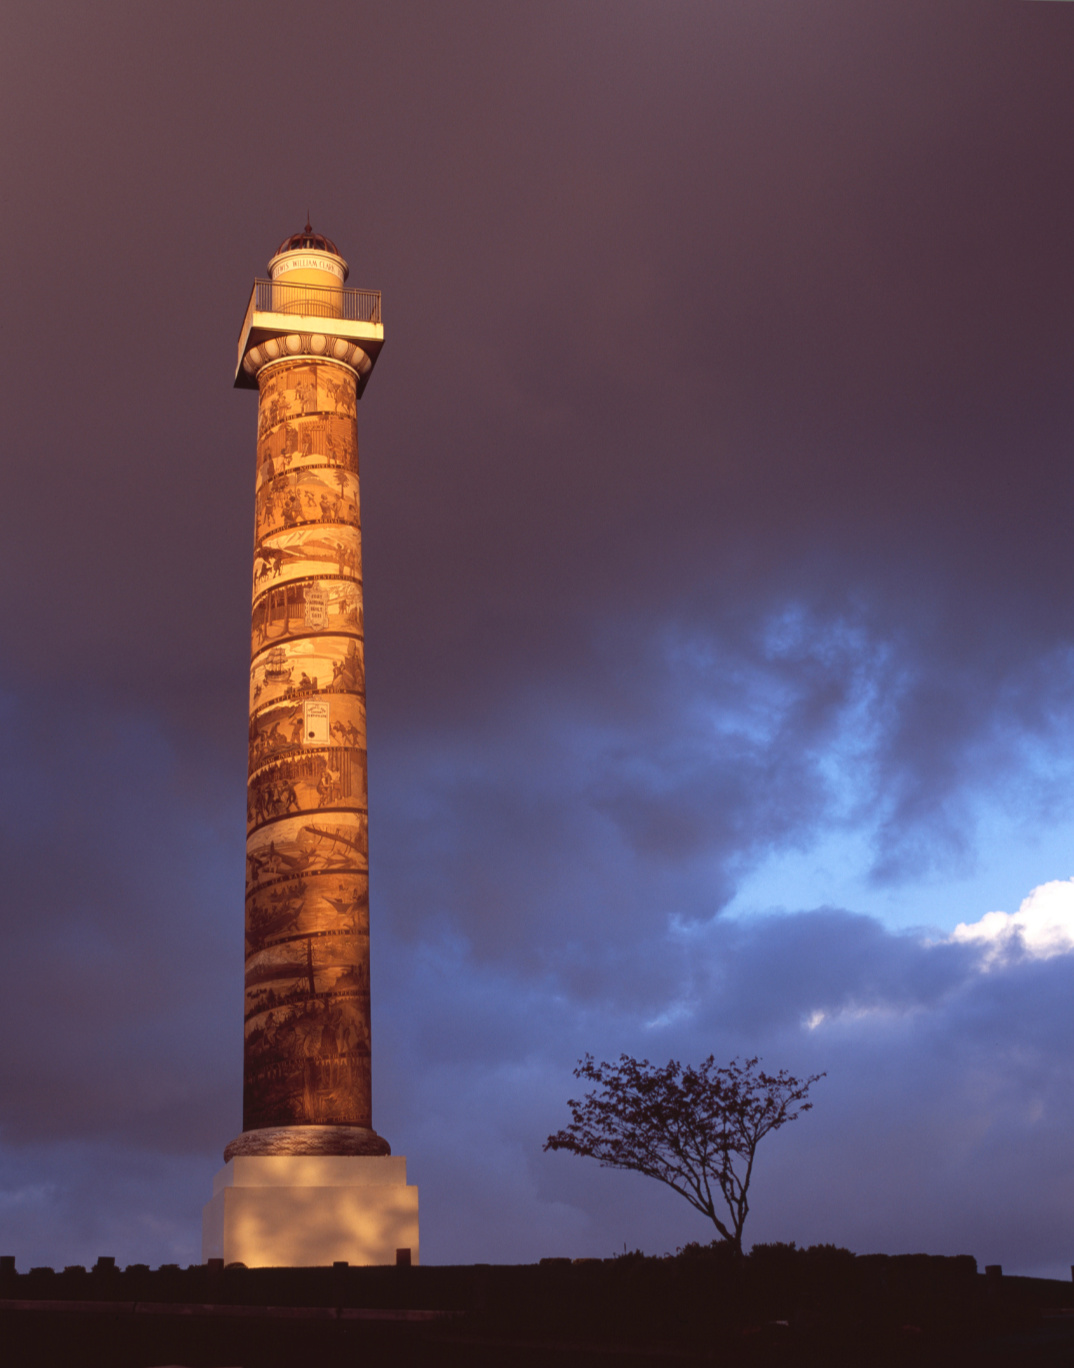 Astoria Column on cloudy night with tree